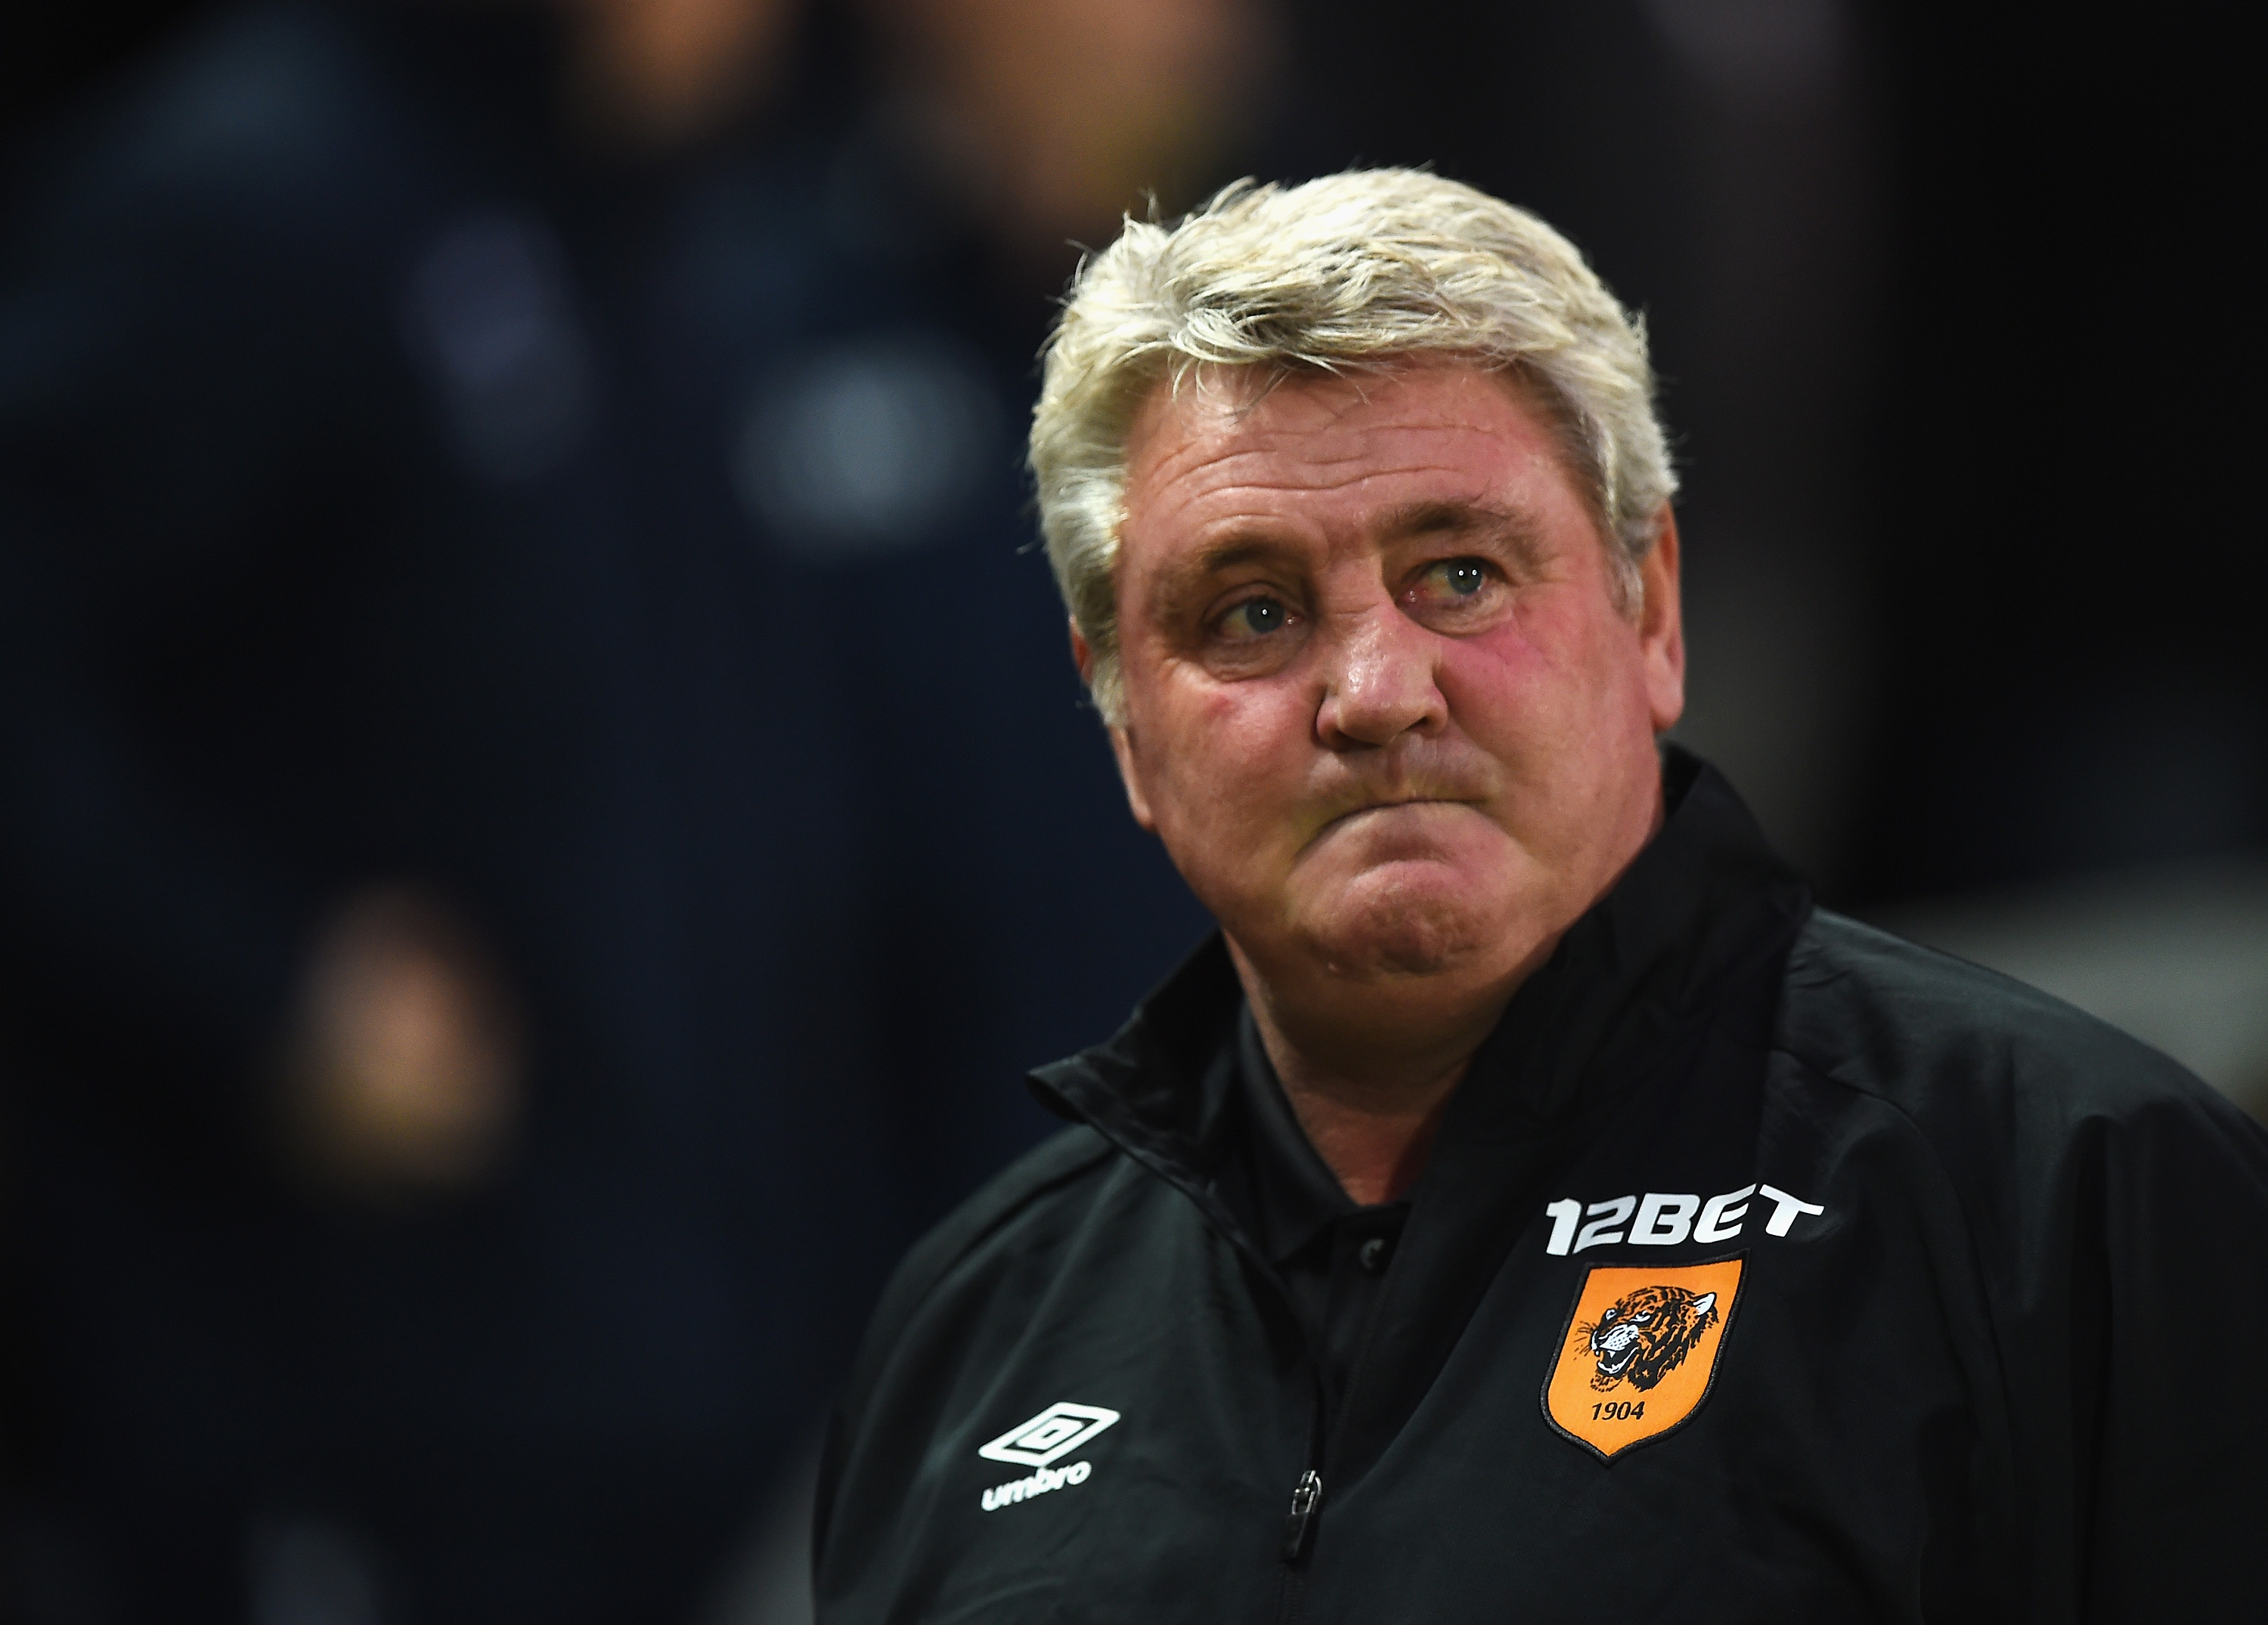 'The most successful manager in our history' – Hull City thank Steve Bruce